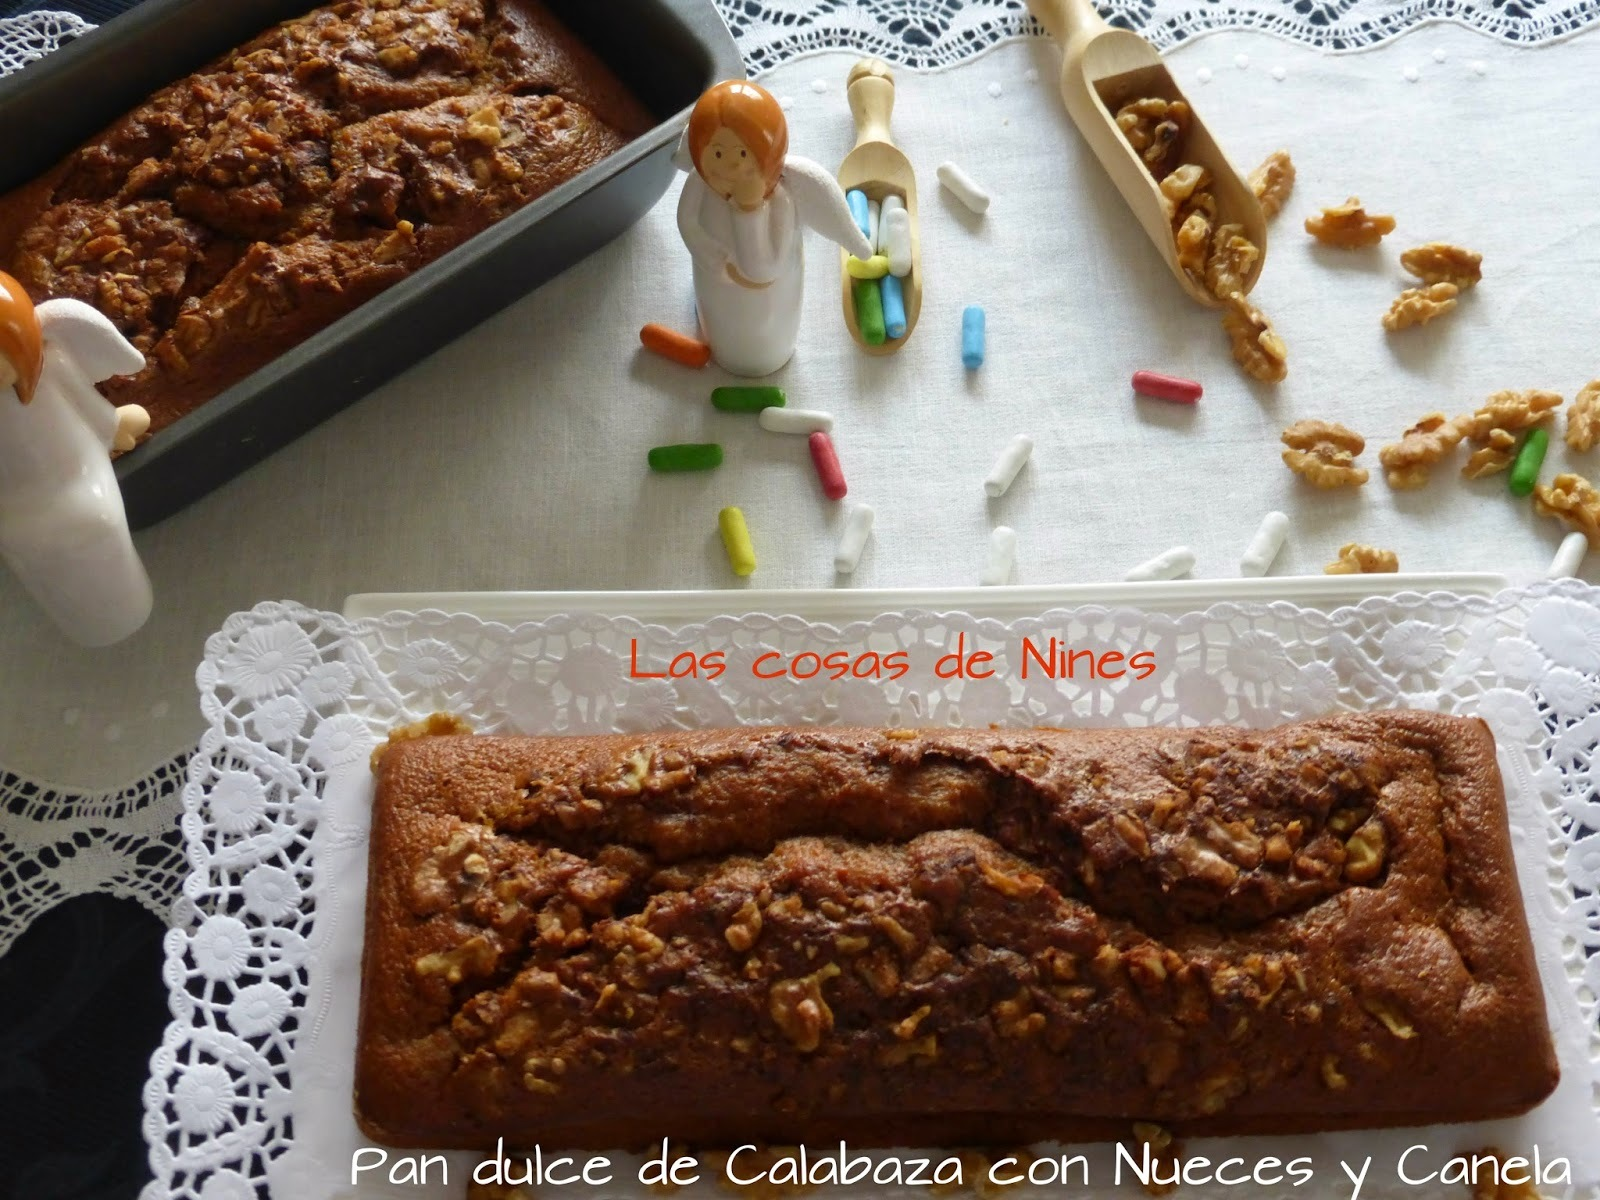 PAN DE CALABAZA, CON NUECES Y CANELA     ( Pumpkin Bread with Cinnamon and Nuts)